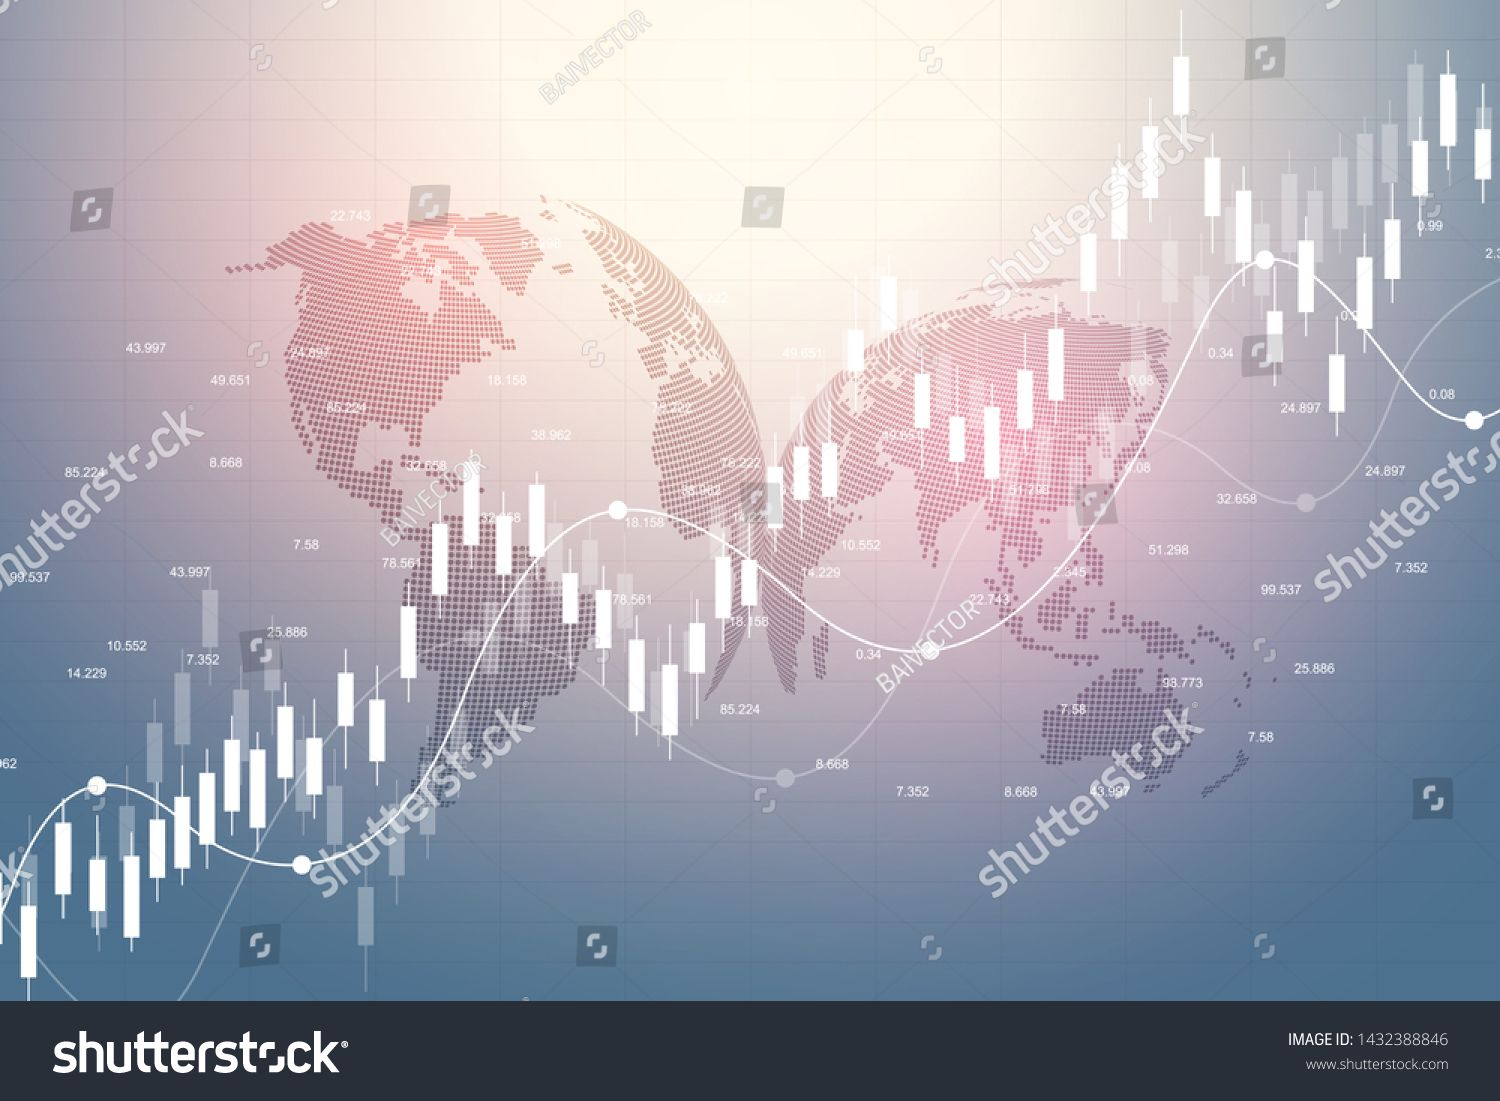 Stock Market Graph Or Forex Trading Chart For Business And